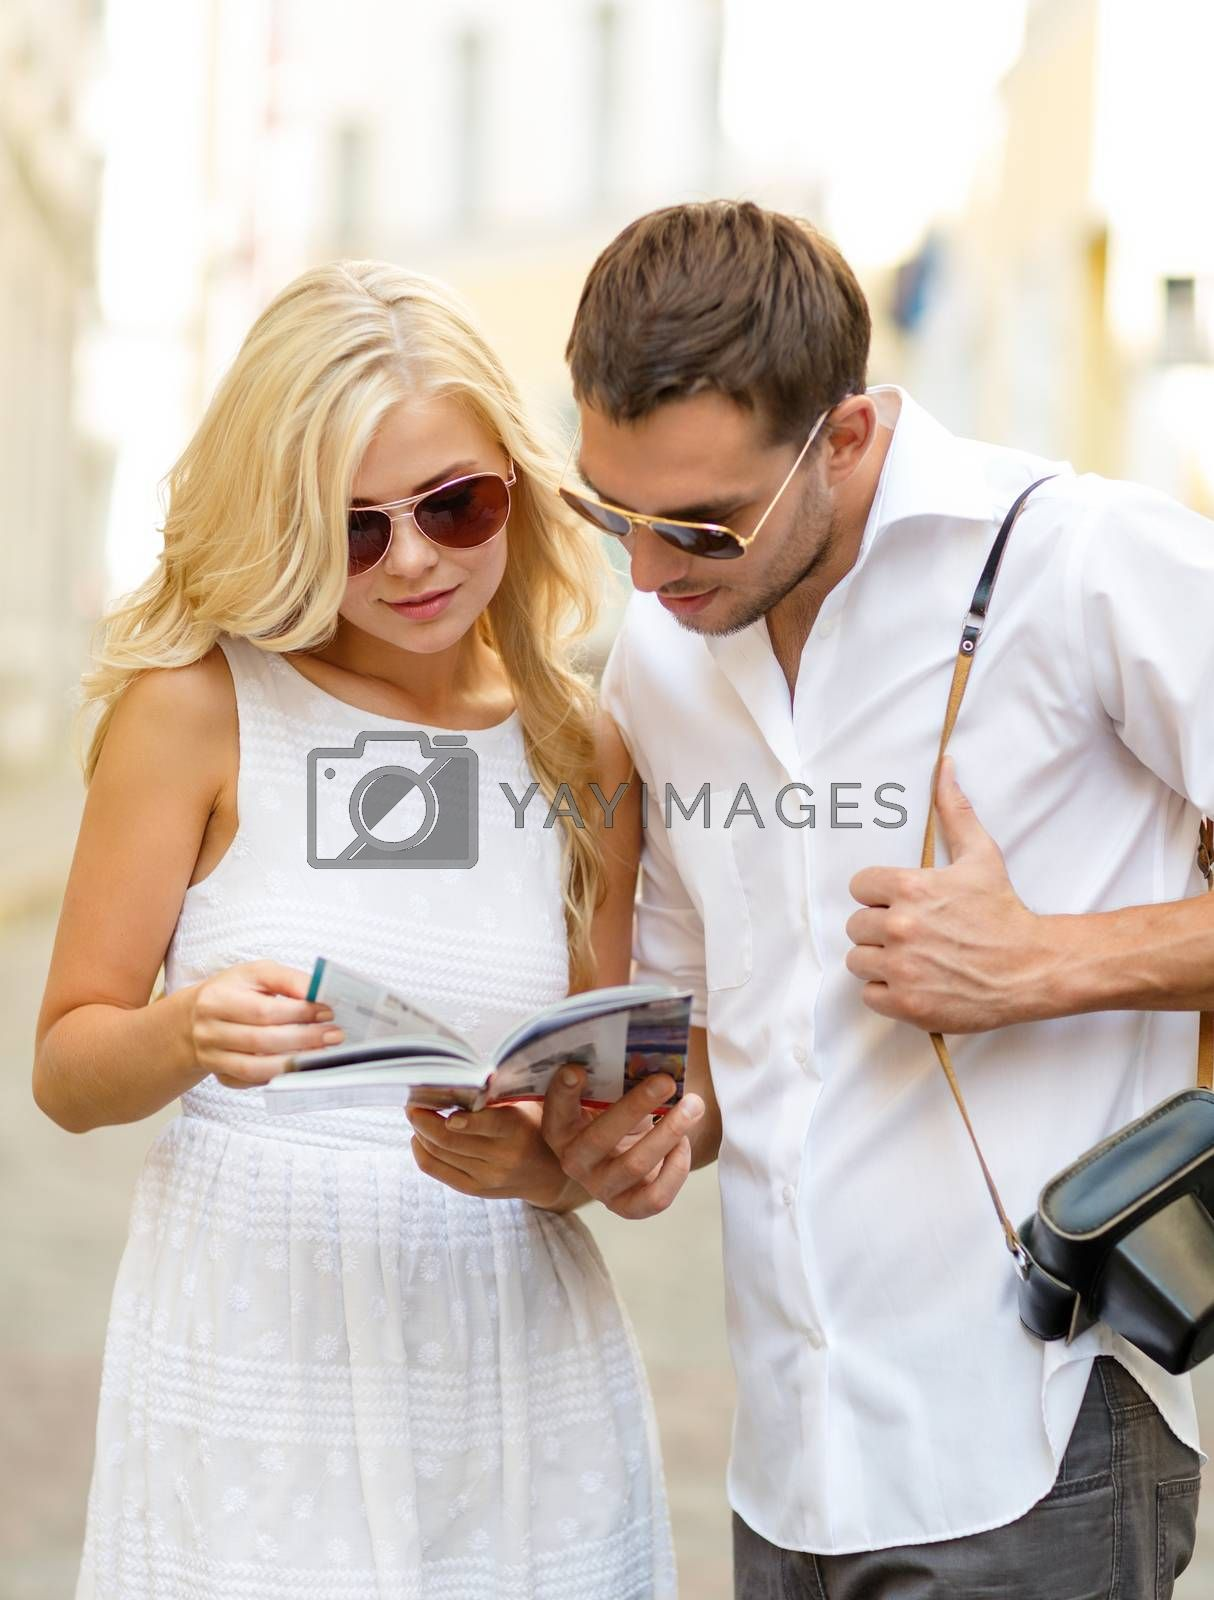 summer holidays, dating, city break and tourism concept - couple with map, camera and travellers guide